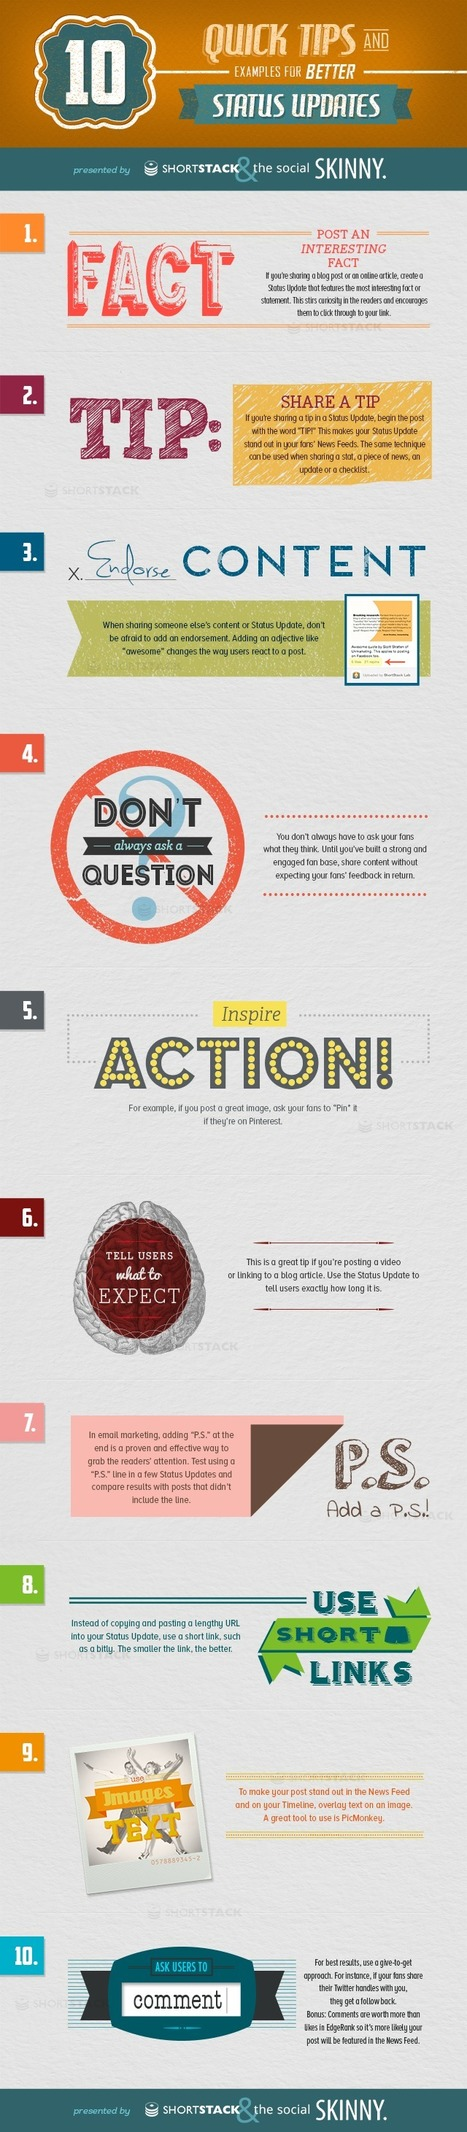 10 Quick Tips And Examples For Better Status Updates - Infographic on Social Media | community development | Scoop.it